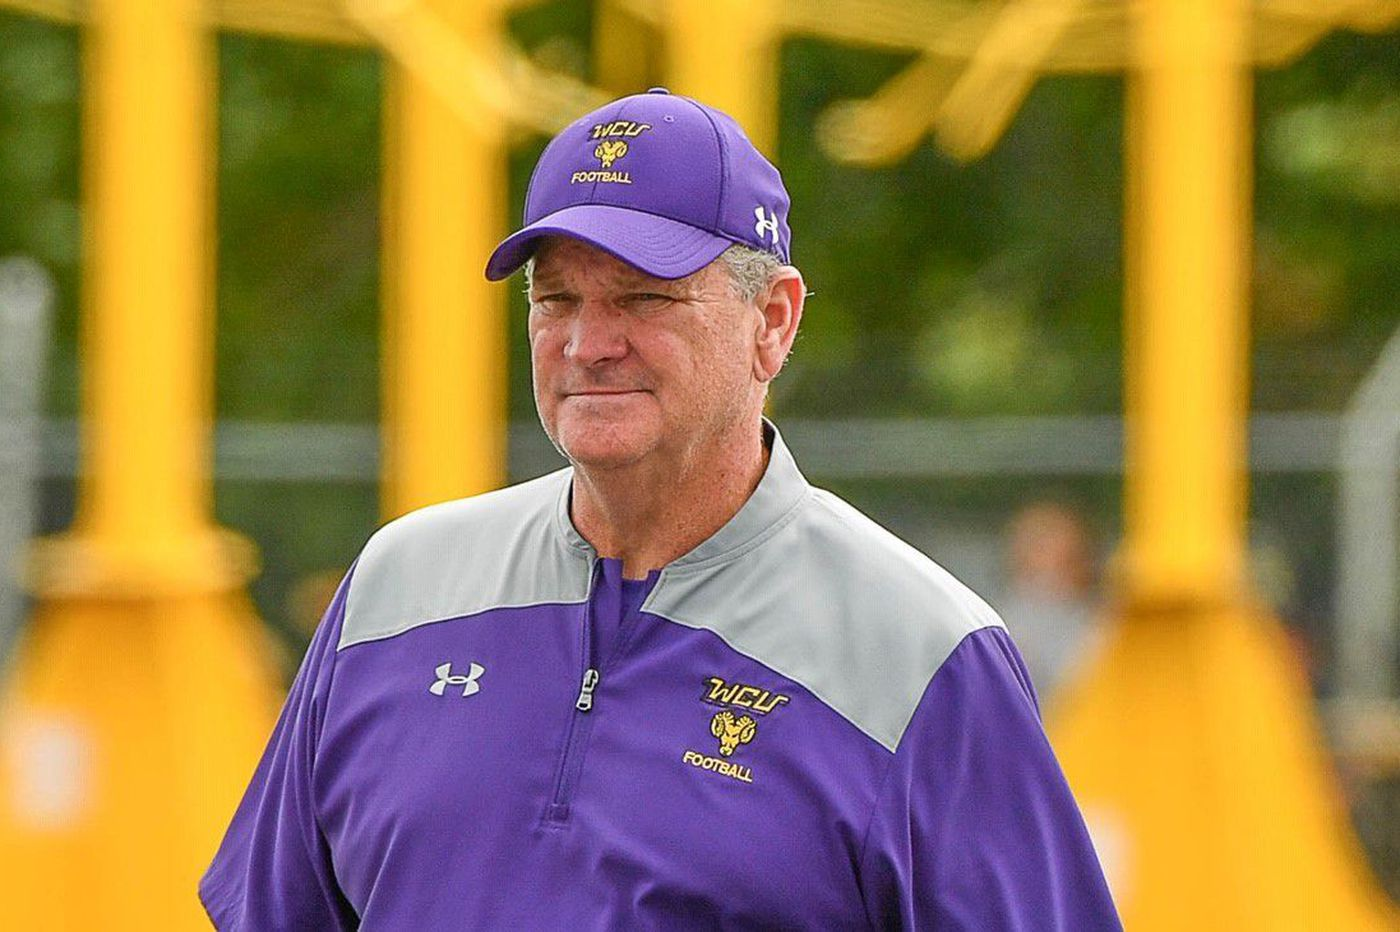 Two strokes, heart blockage, five knee surgeries: West Chester football coach Bill Zwaan's offseason of medical hell | Mike Jensen